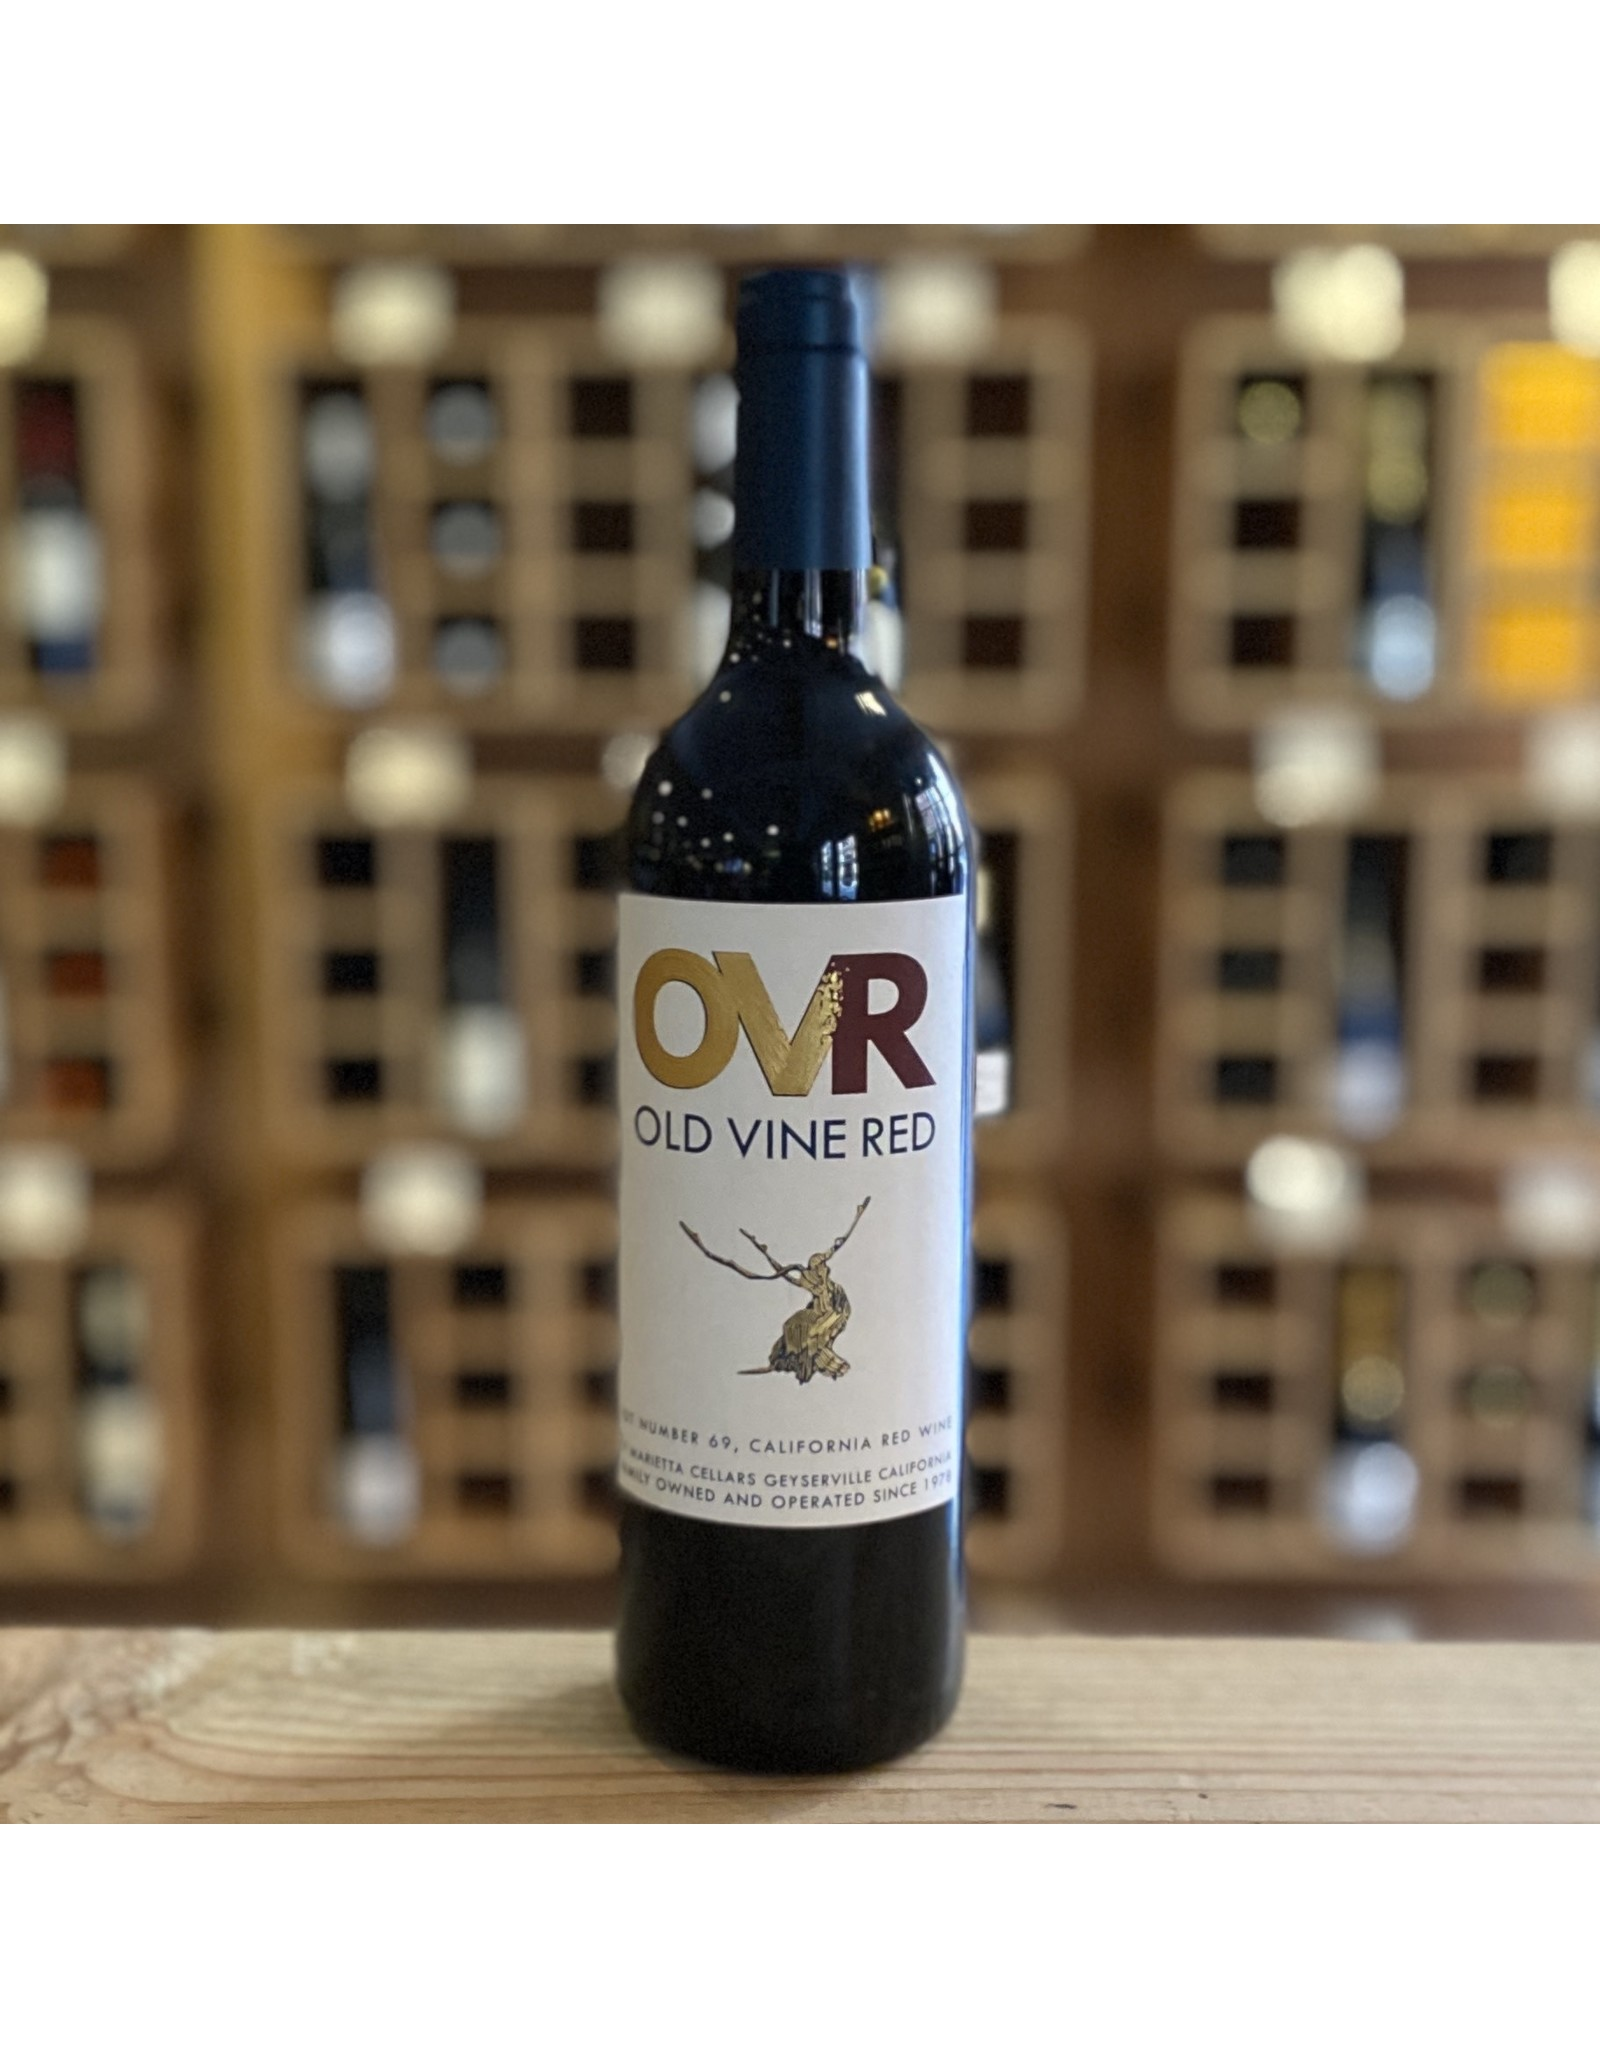 California Marietta Cellars ''Old Vine Red'' Lot 69 Red Blend - Sonoma County CA